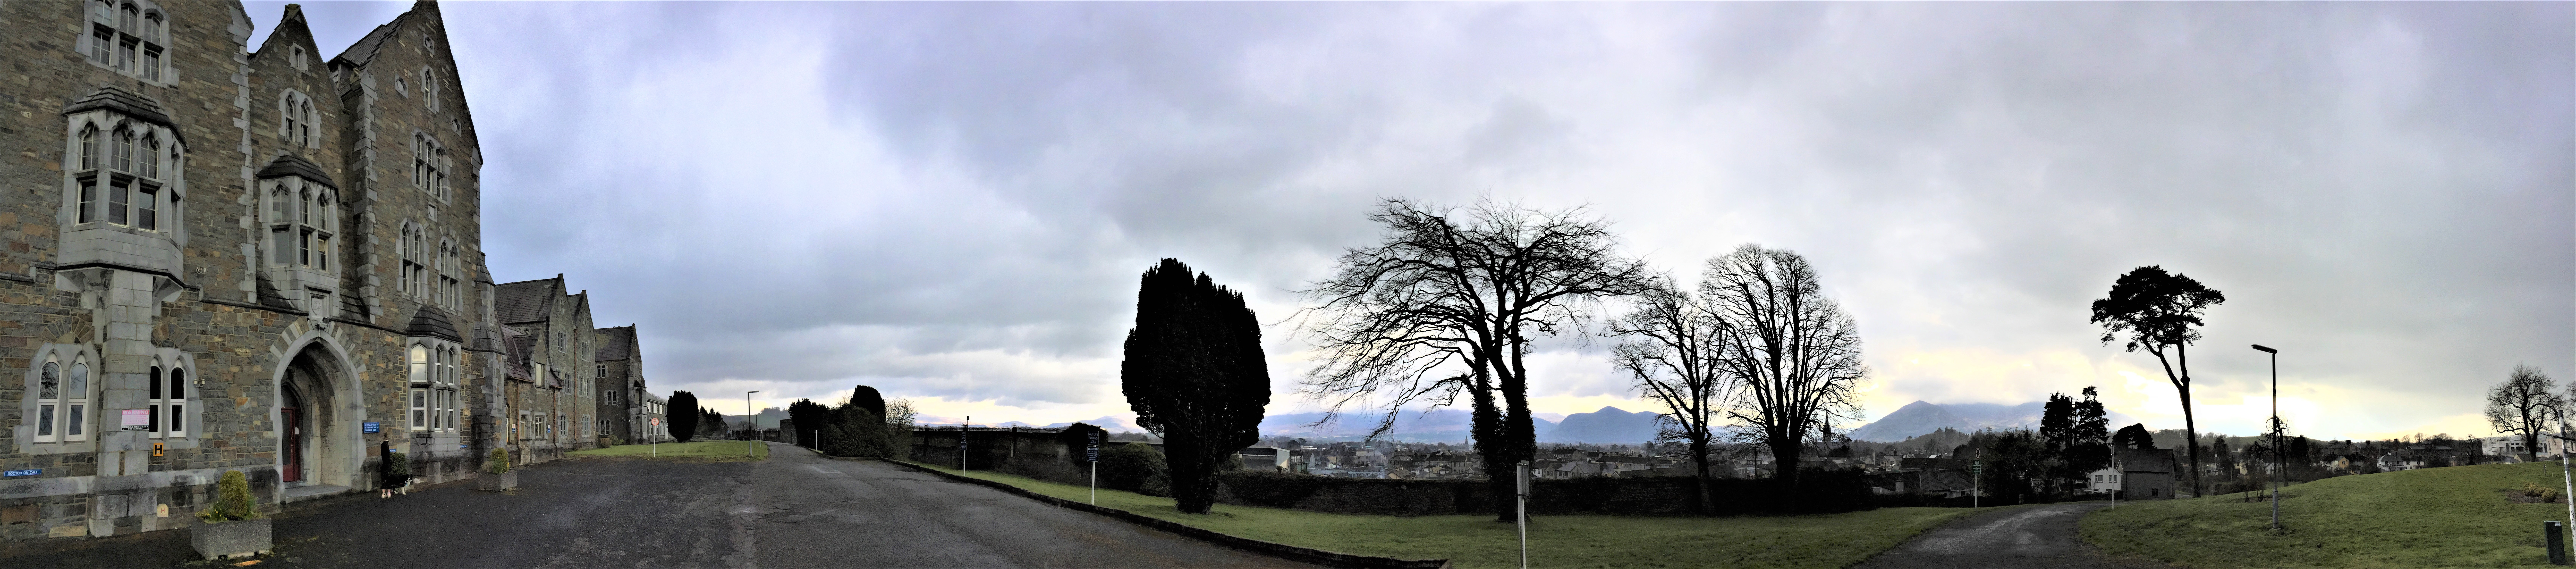 1-St Finan's Hospital Killarney and Surrounding Landscape of Killarney Town and Mountains